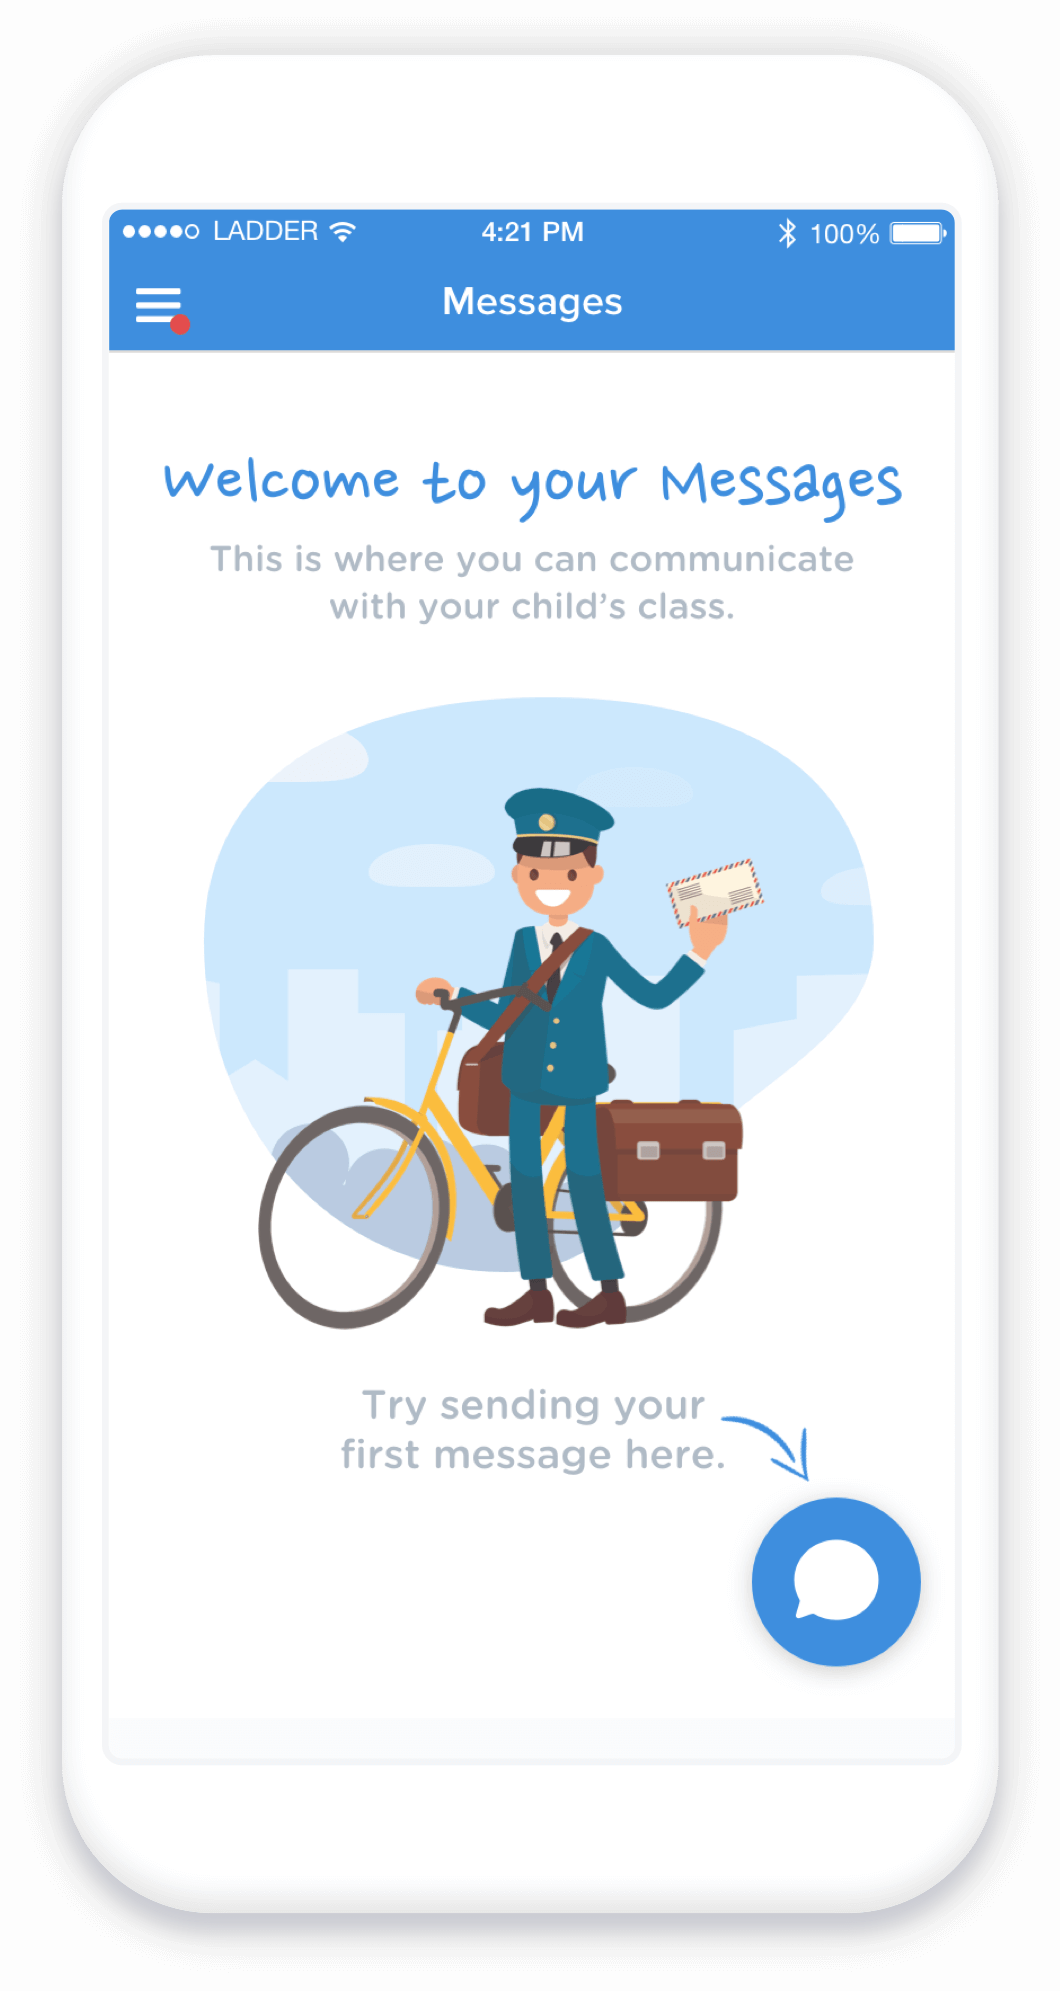 Daycare app for parents to manage messages